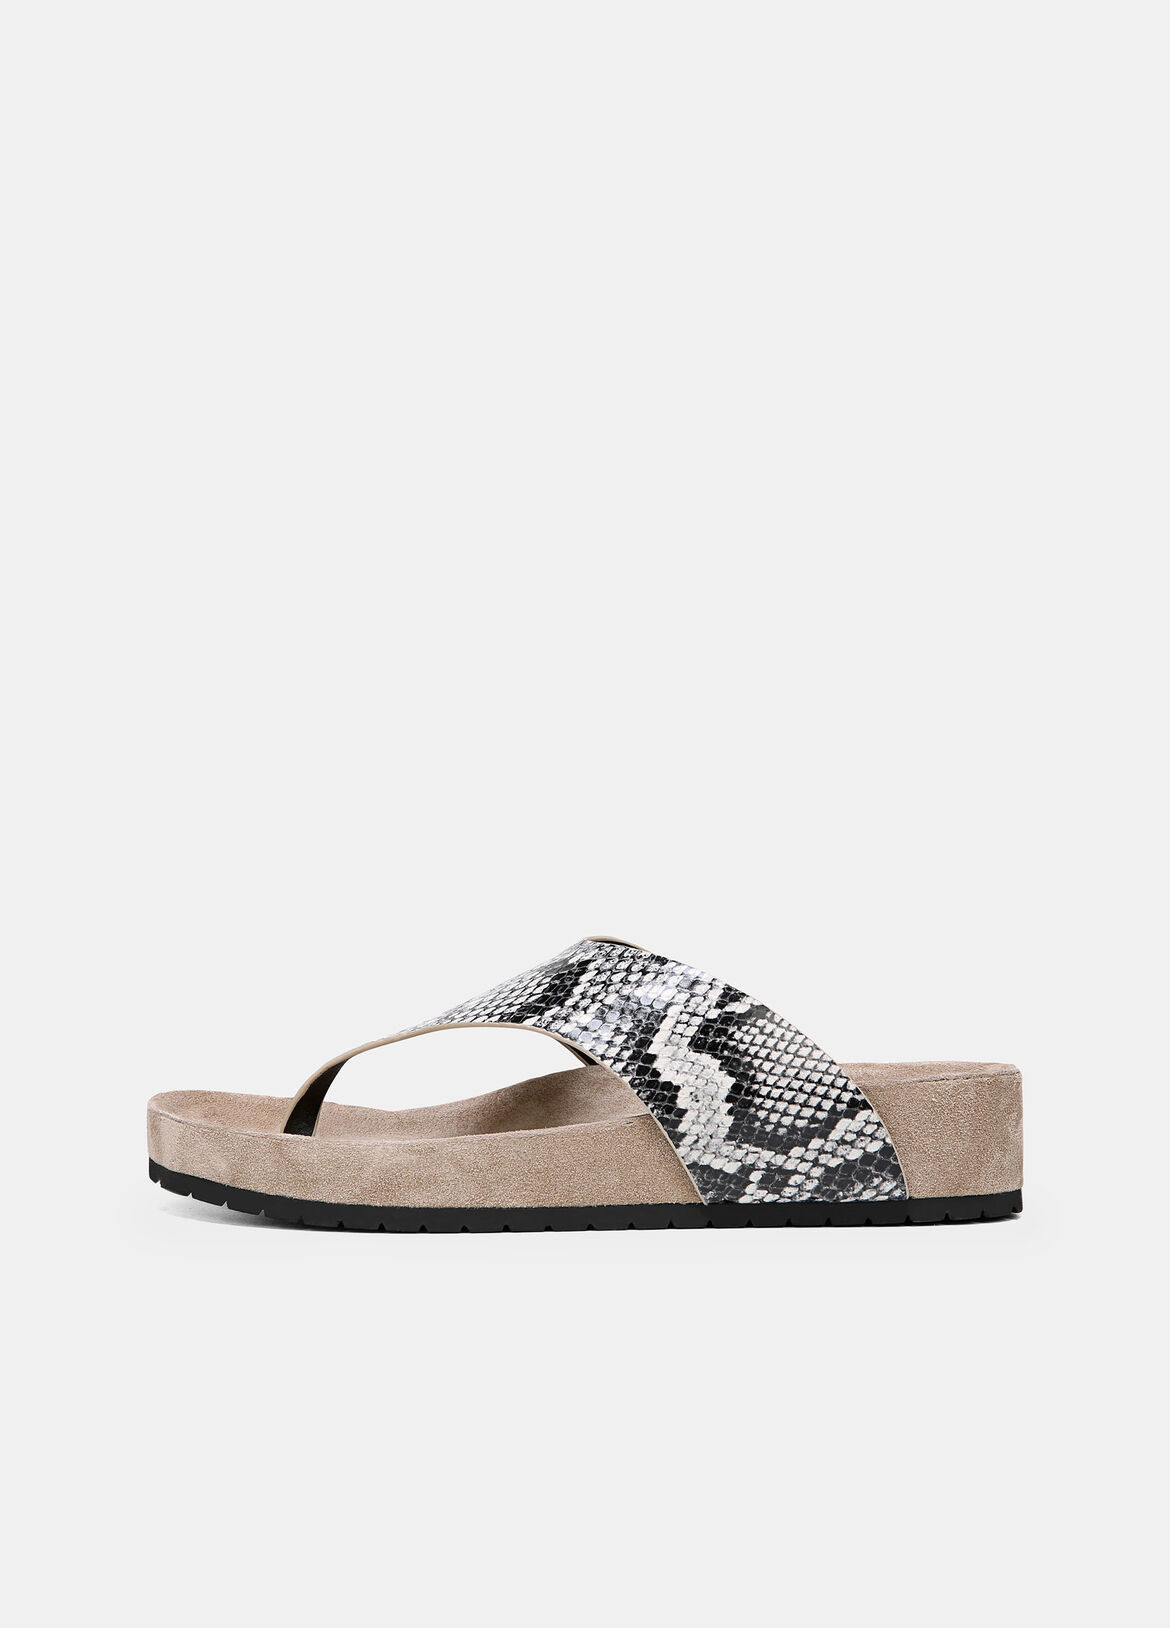 The Padma are elevated sandals done in contrasting snake-effect leather and suede. They're finished with comfortable molded footbeds.